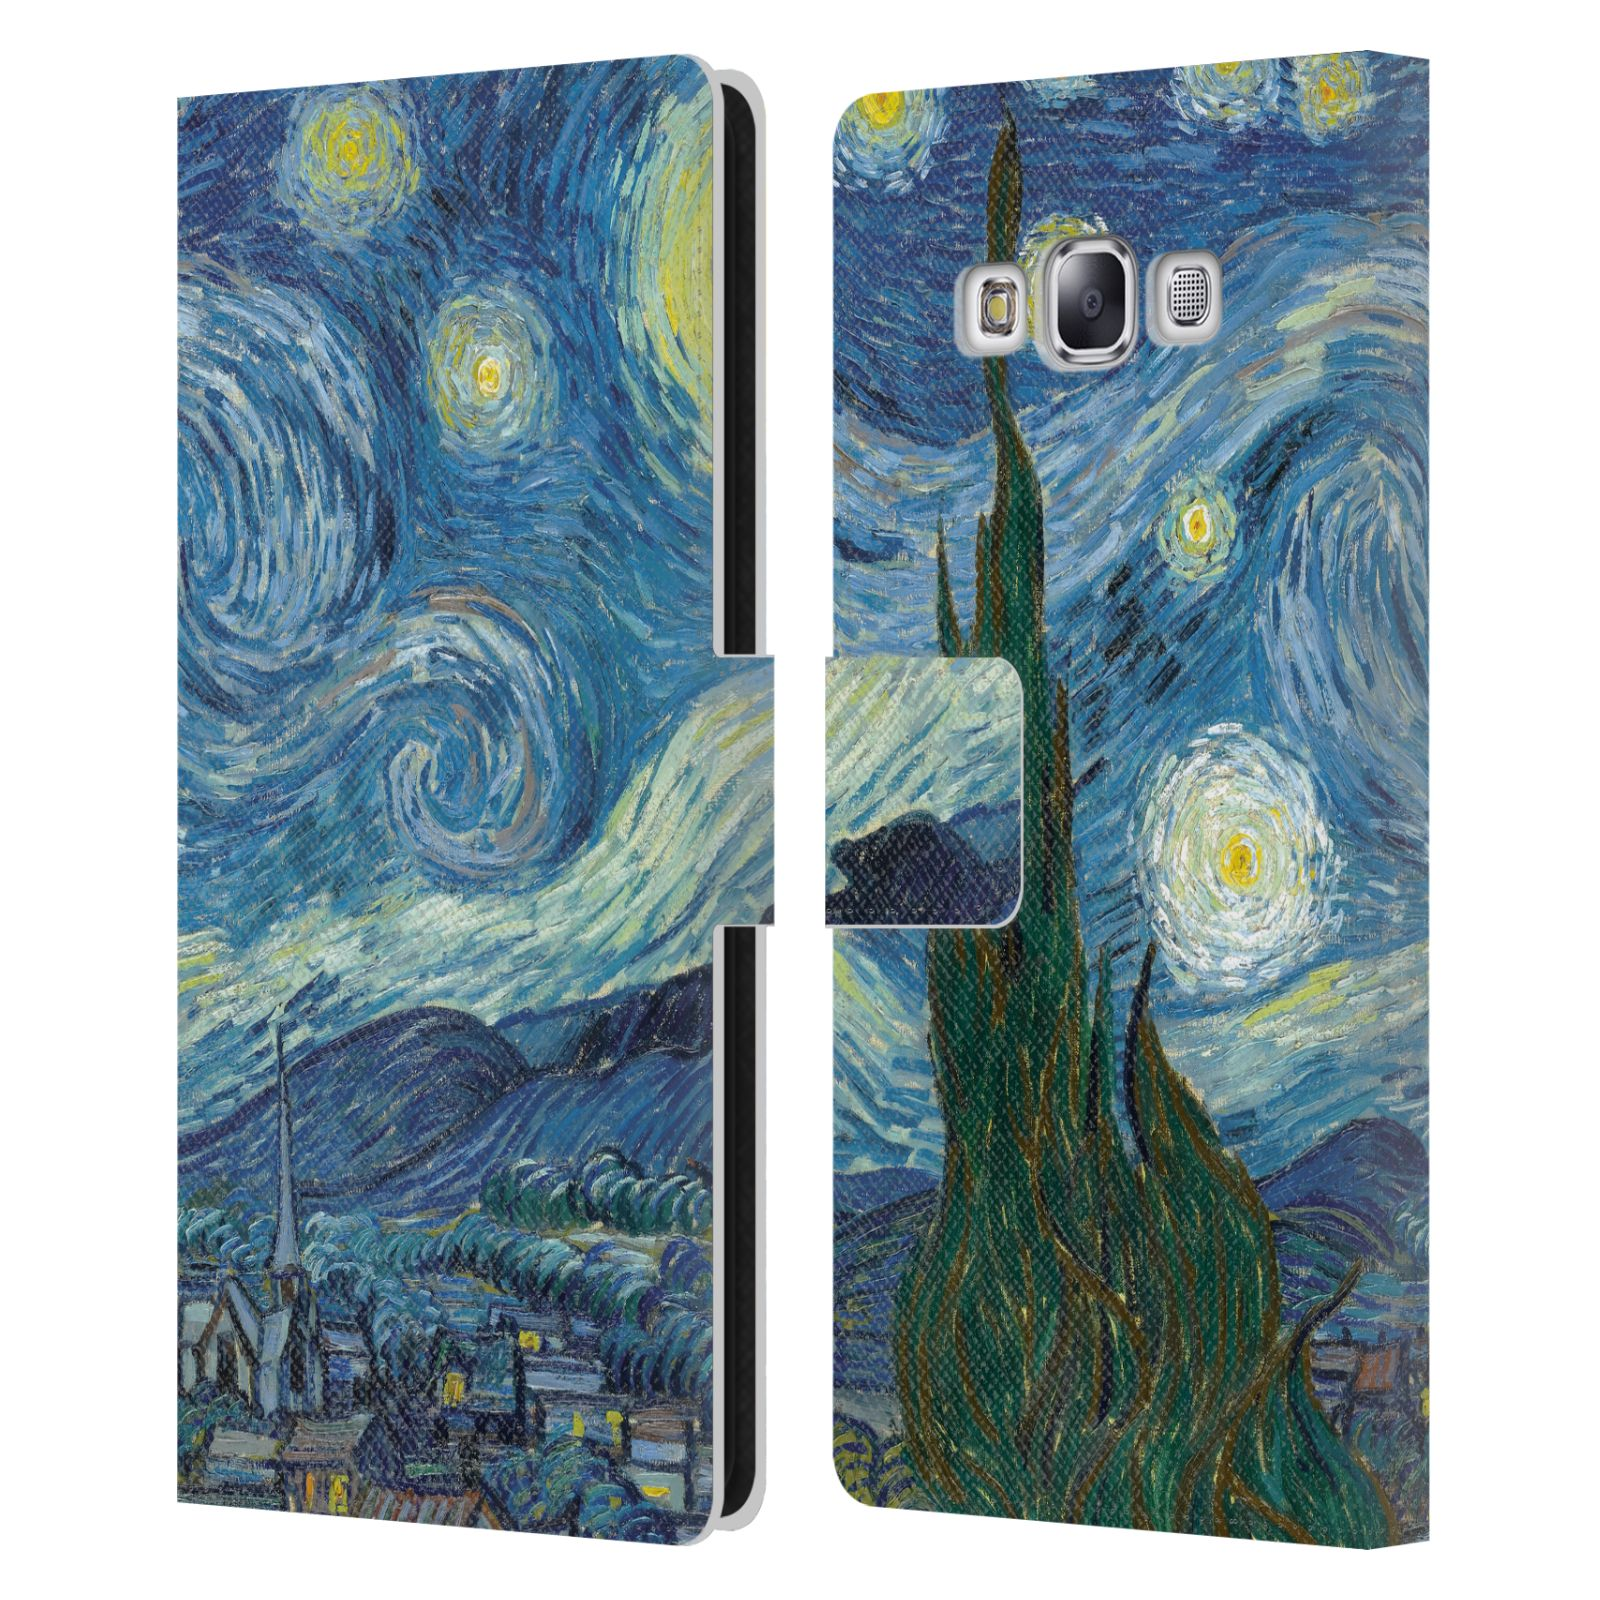 OFFICIAL-MASTERS-COLLECTION-PAINTINGS-1-LEATHER-BOOK-CASE-FOR-SAMSUNG-PHONES-3